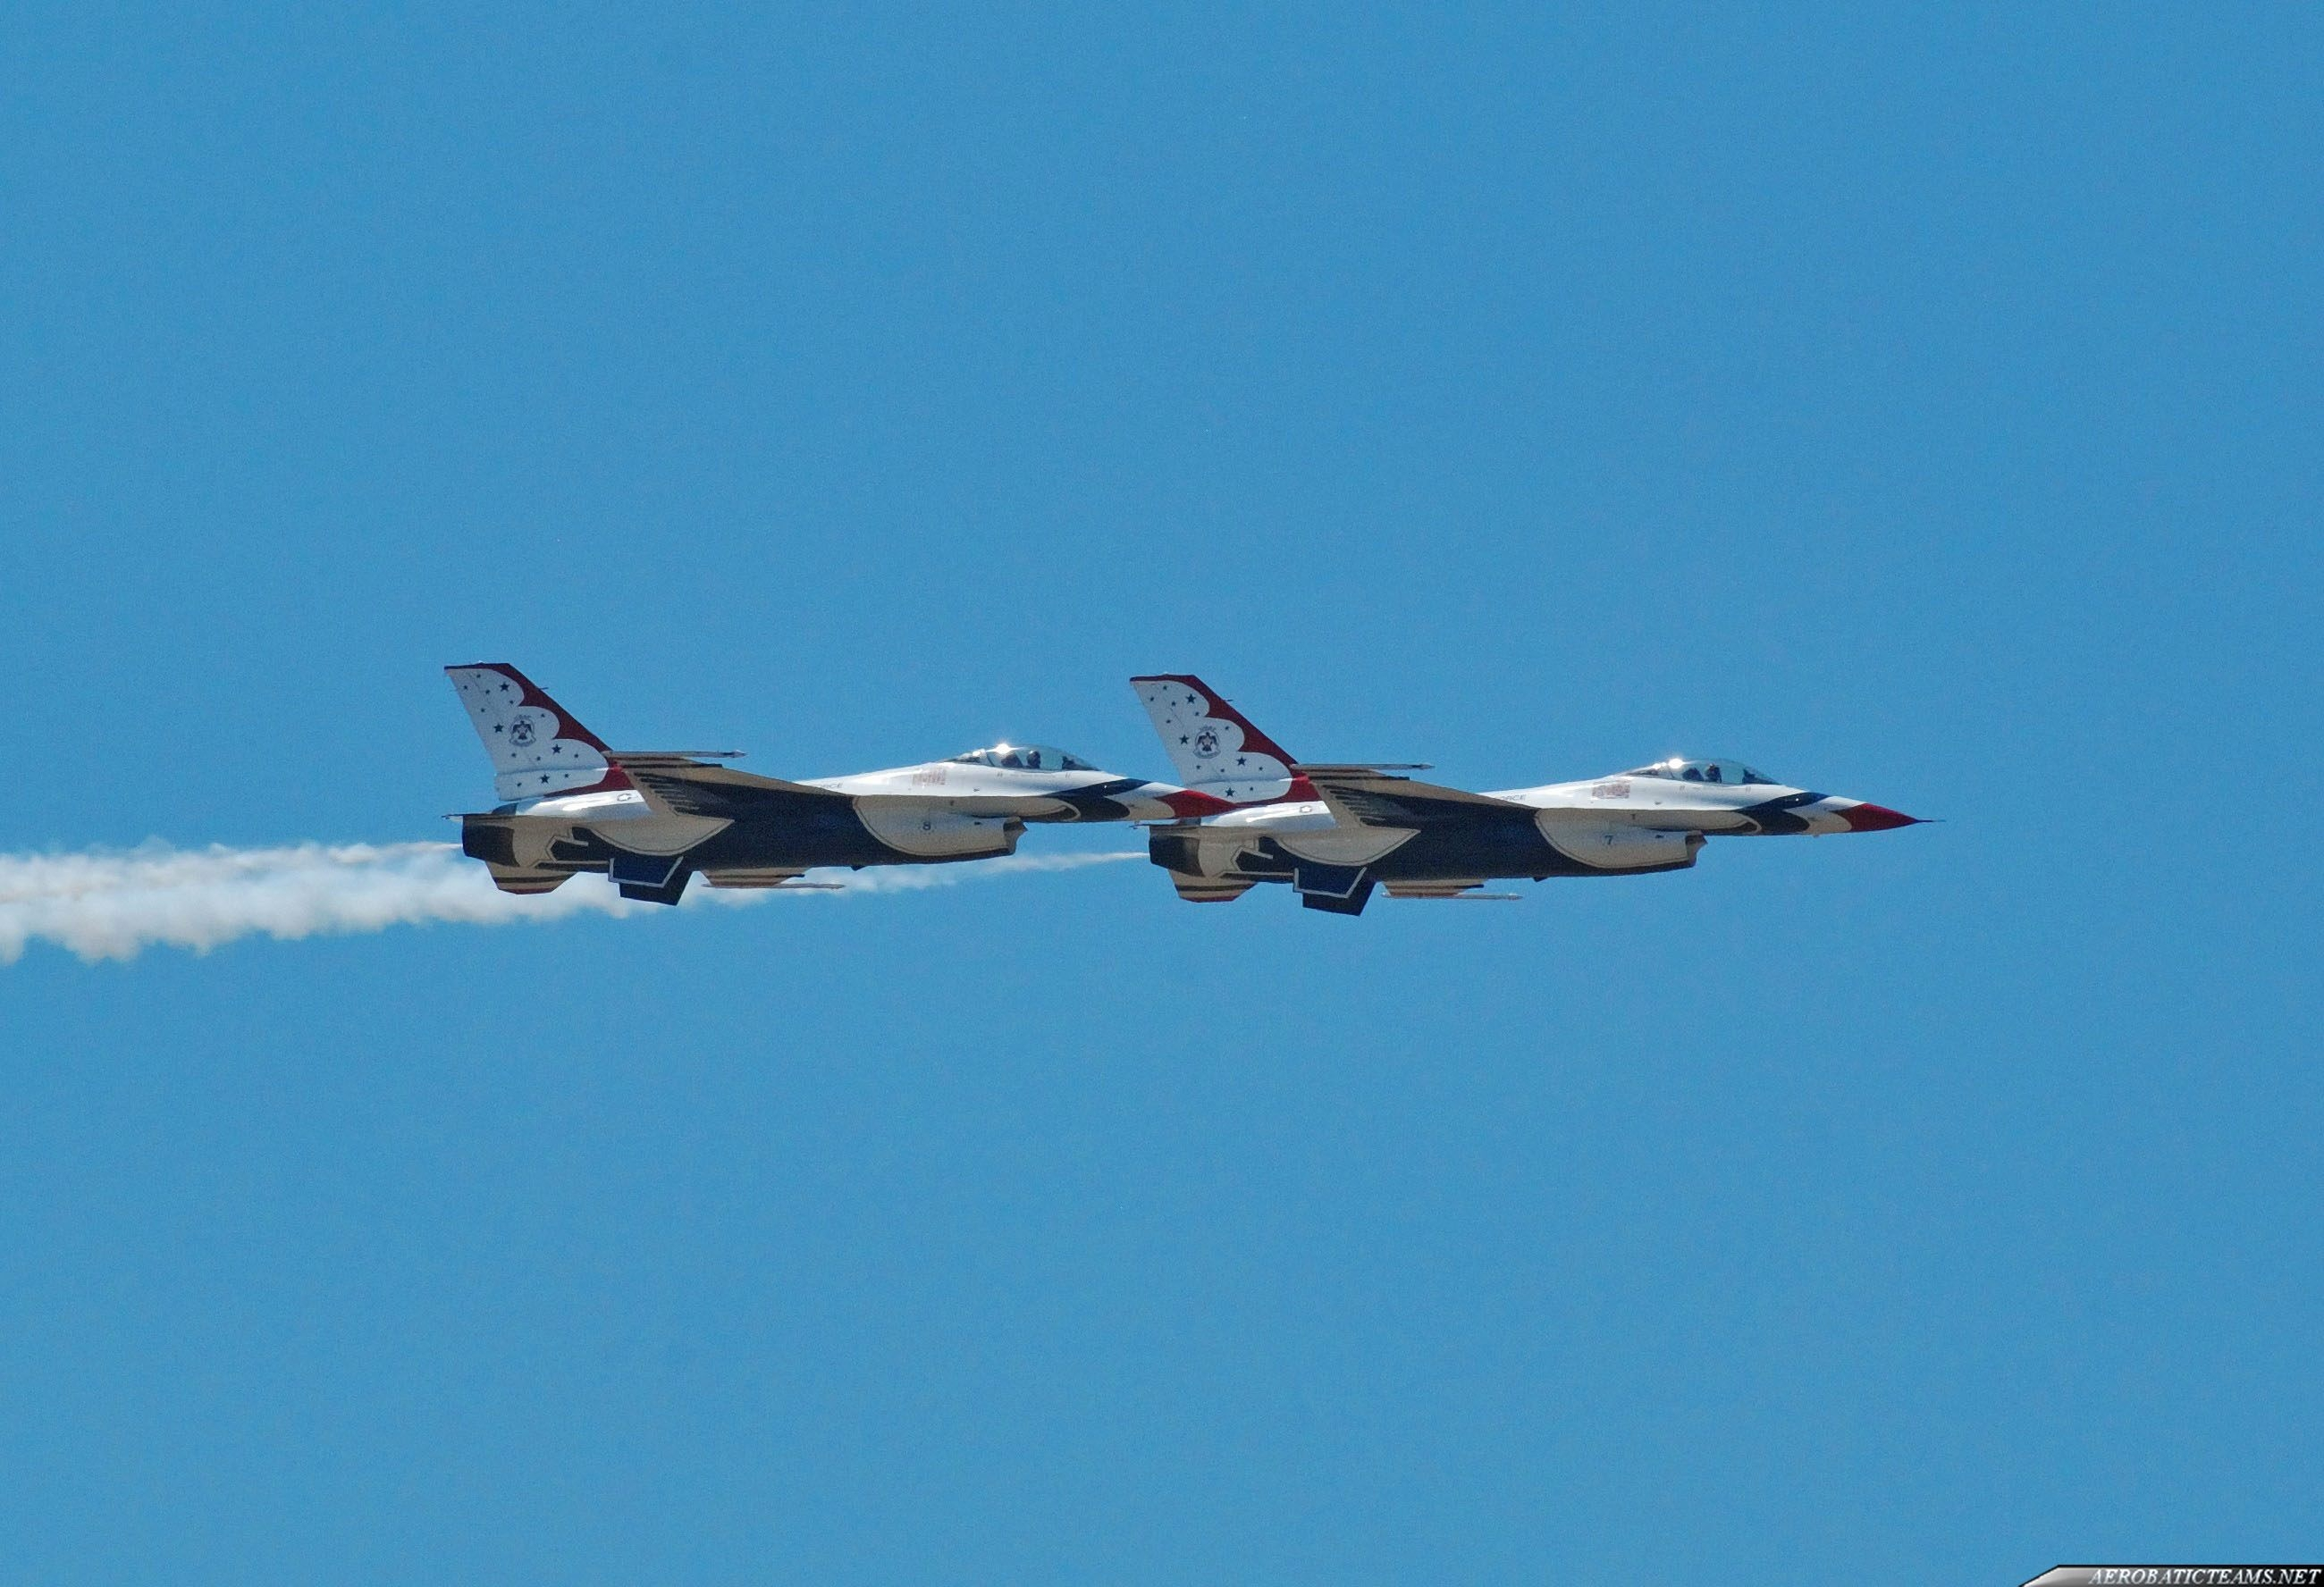 Thunderbirds #7 and #8 arrived over the Graf Ignatievo Air Base